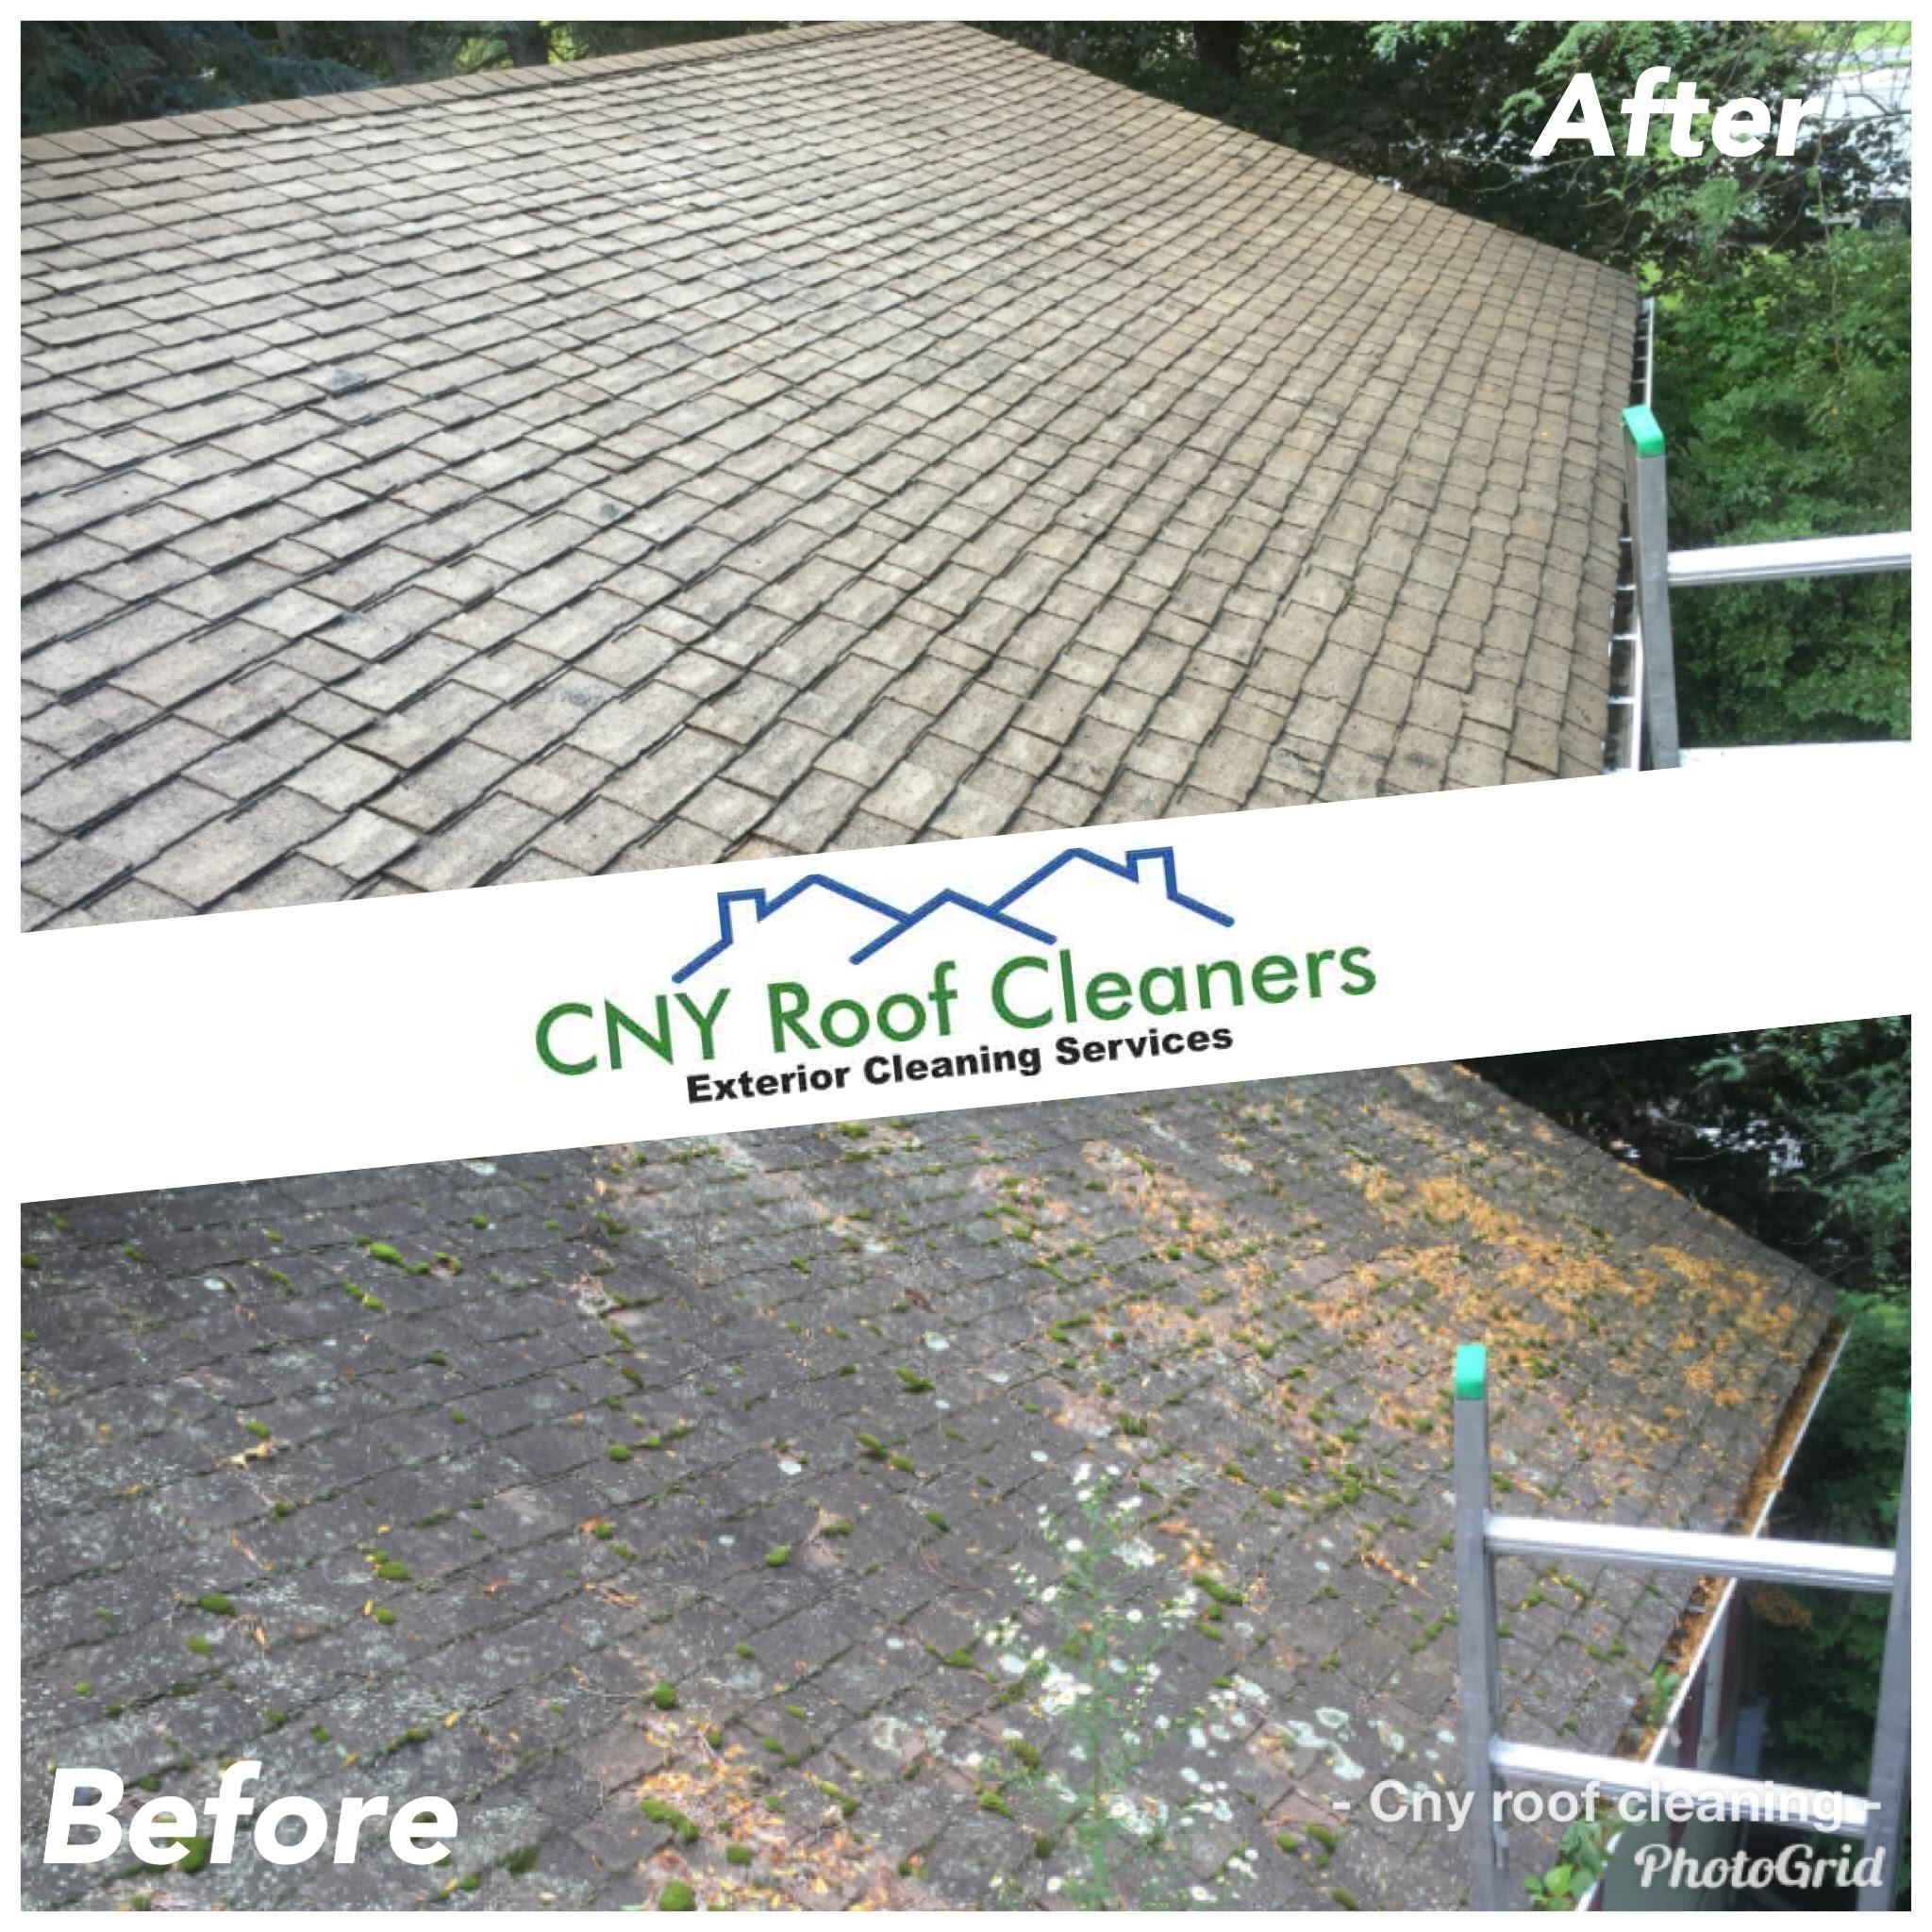 CNY Roof Cleaners